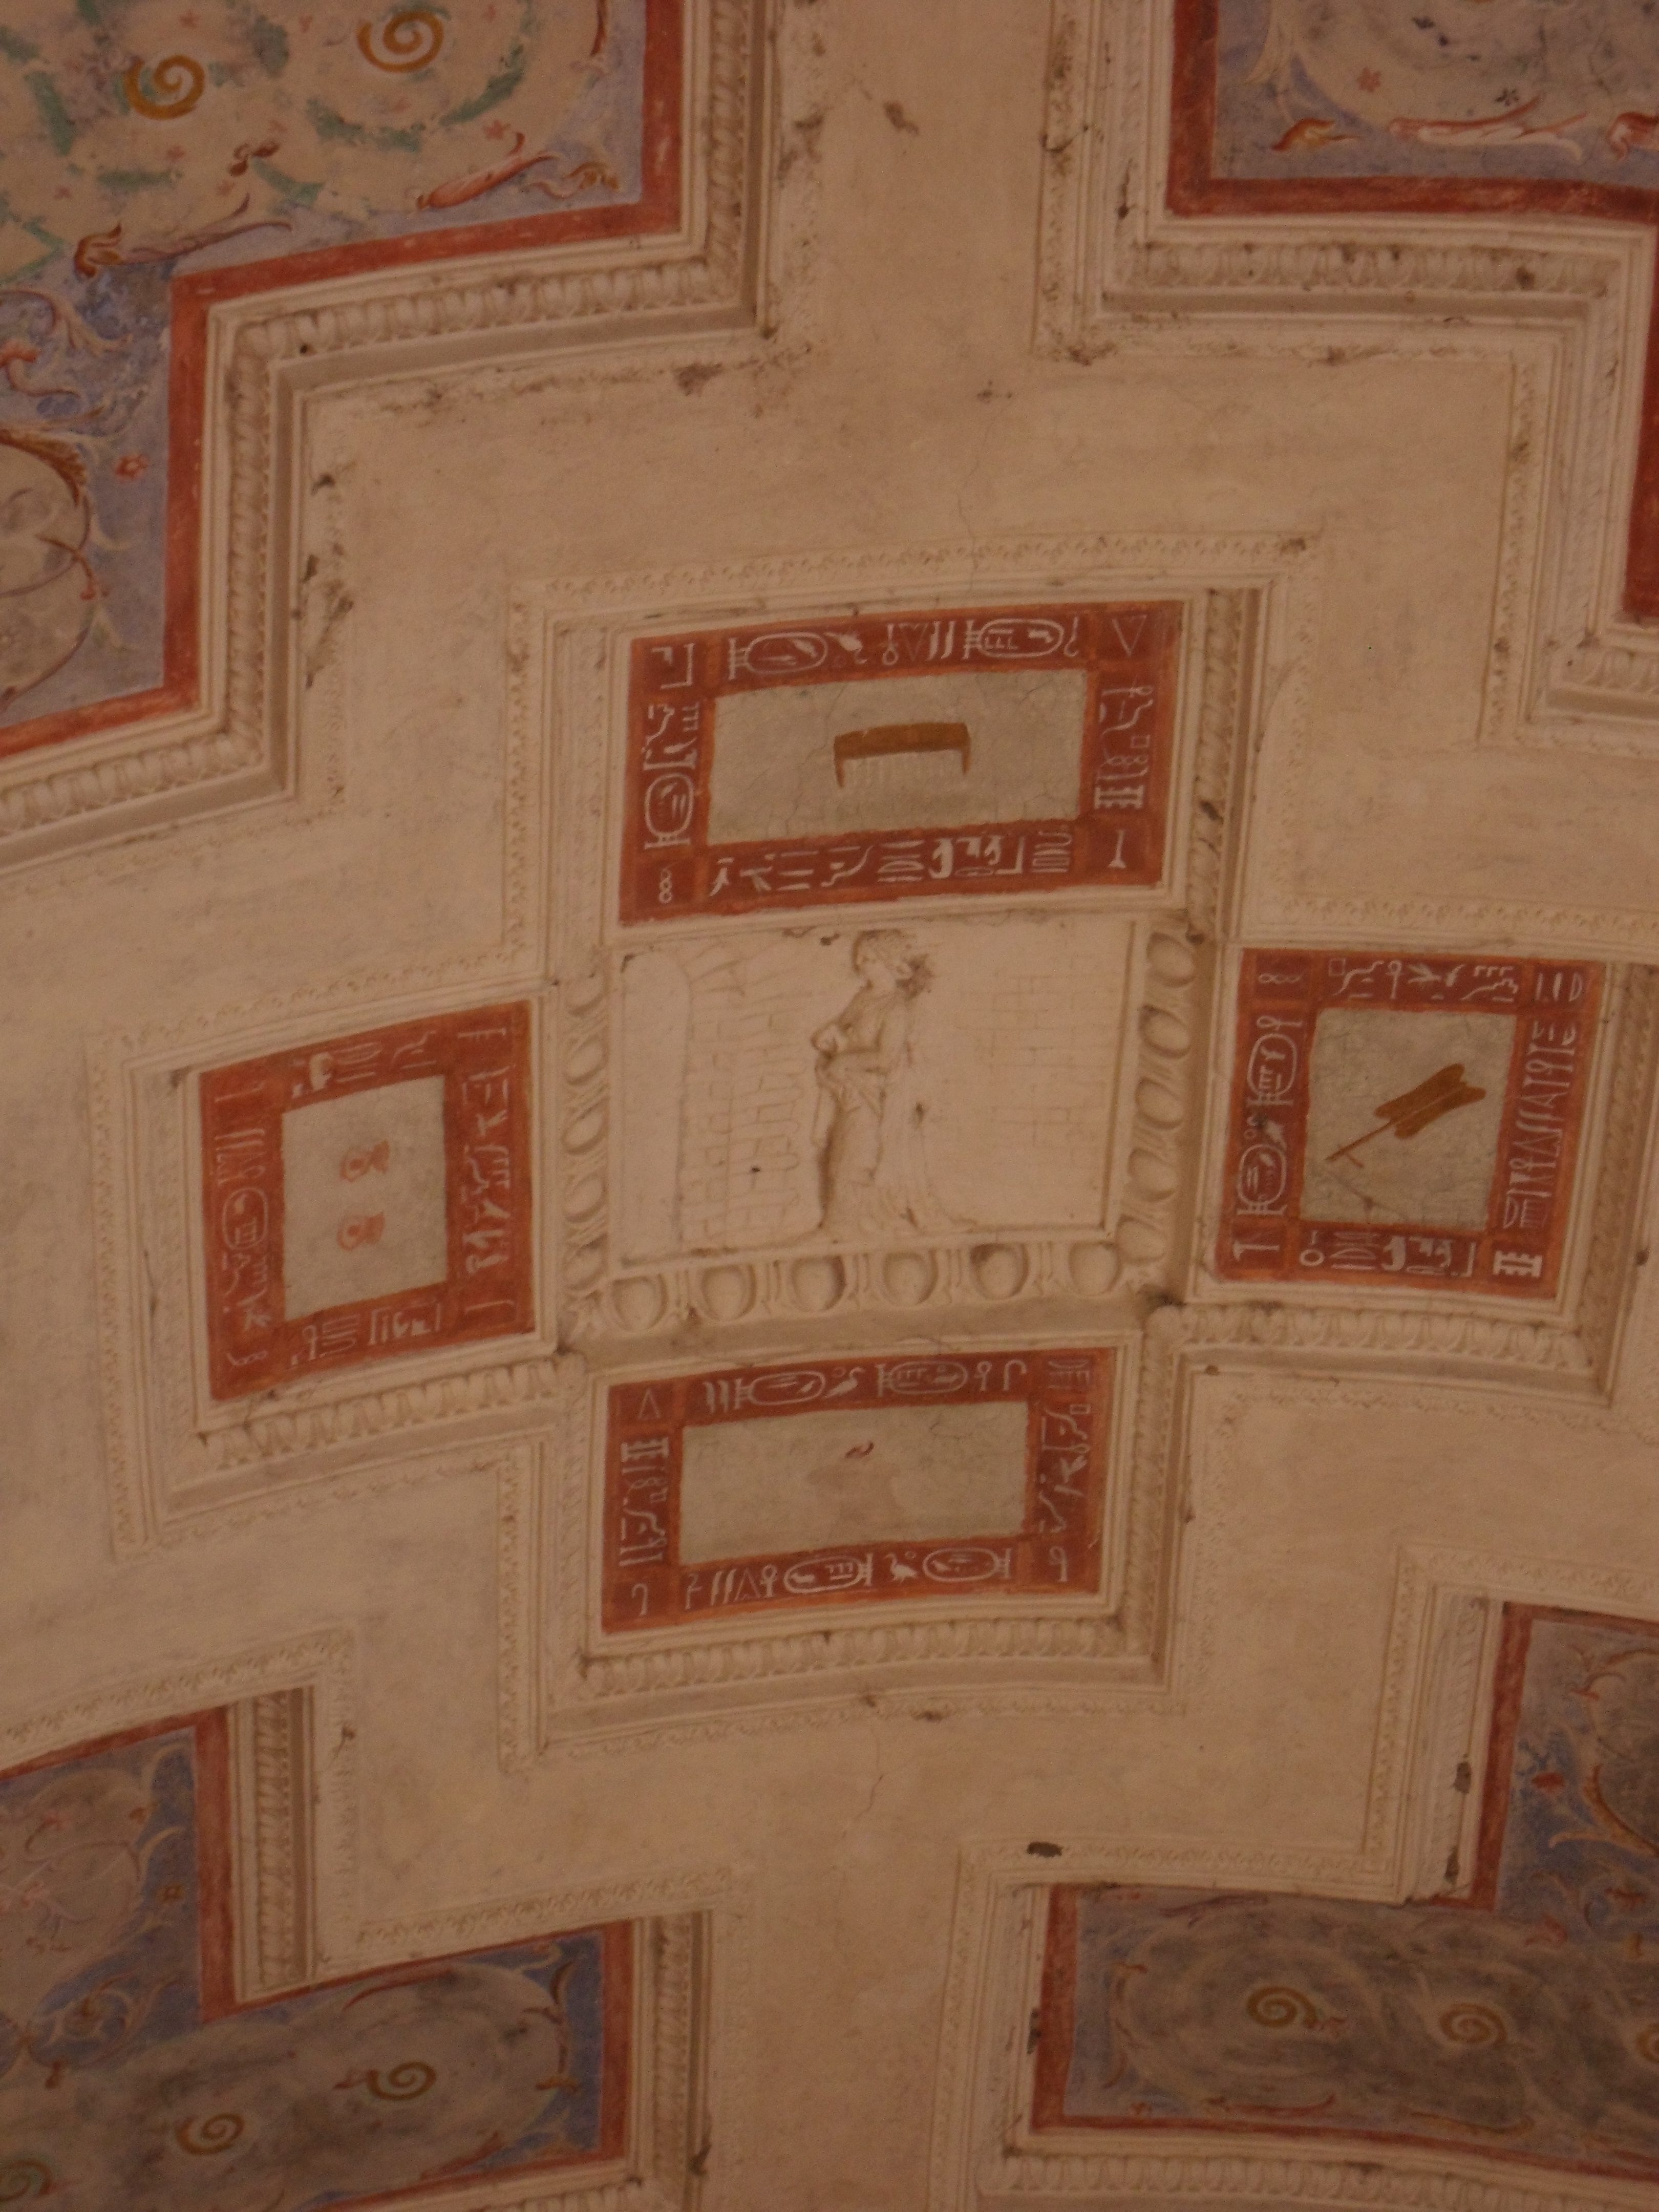 A roof decorated with neo-classical reliefs and fake heiroglyphics